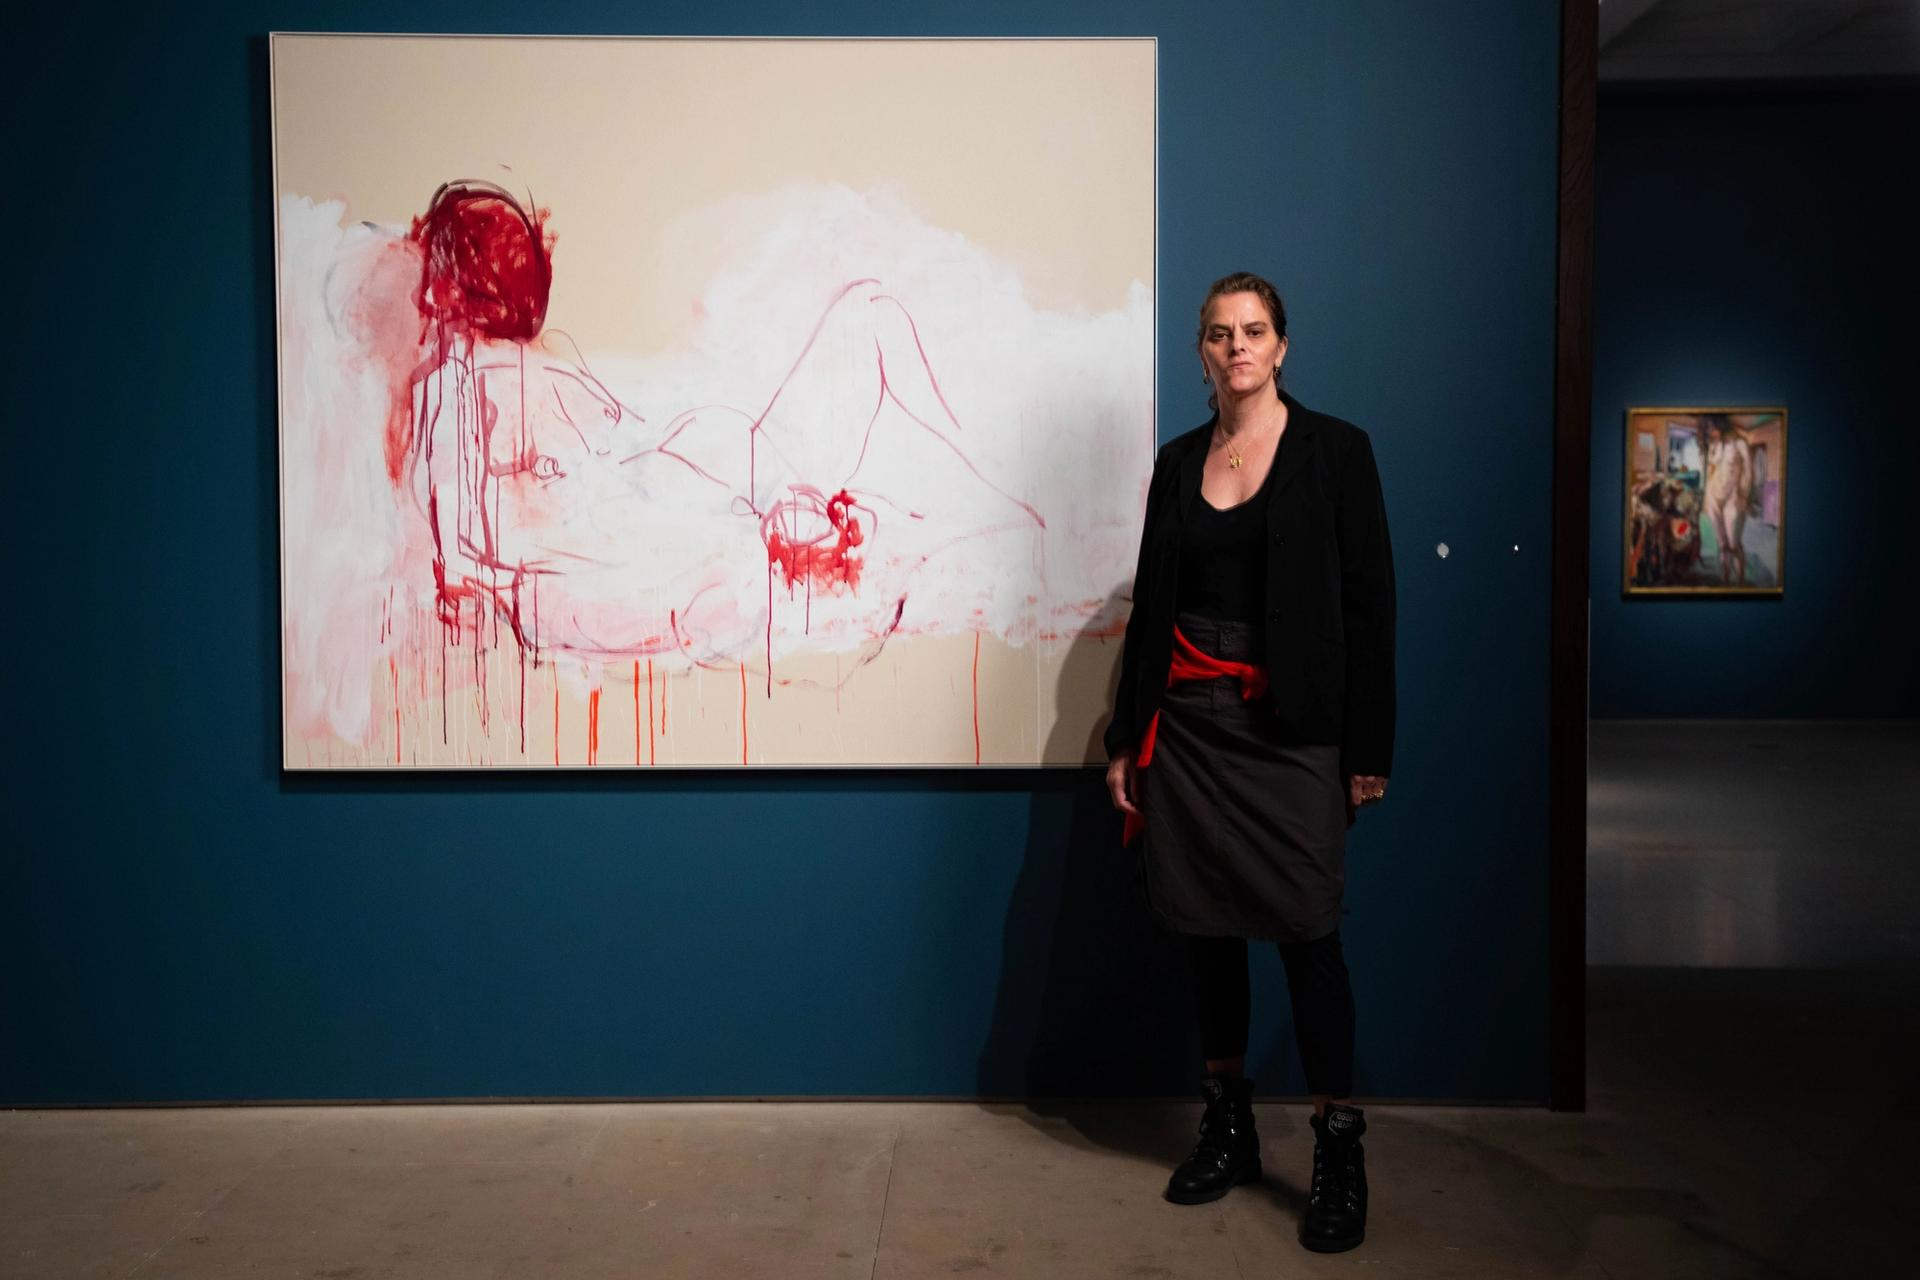 Tracey Emin in front of This is life without you - You made me Feel Like This (2018), on display at the Royal Academy of Arts, London, 7 December 2020-28 February 2021 Loan courtesy of Collection Majudia © Tracey Emin. All rights reserved, DACS 2020. Photo: © David Parry